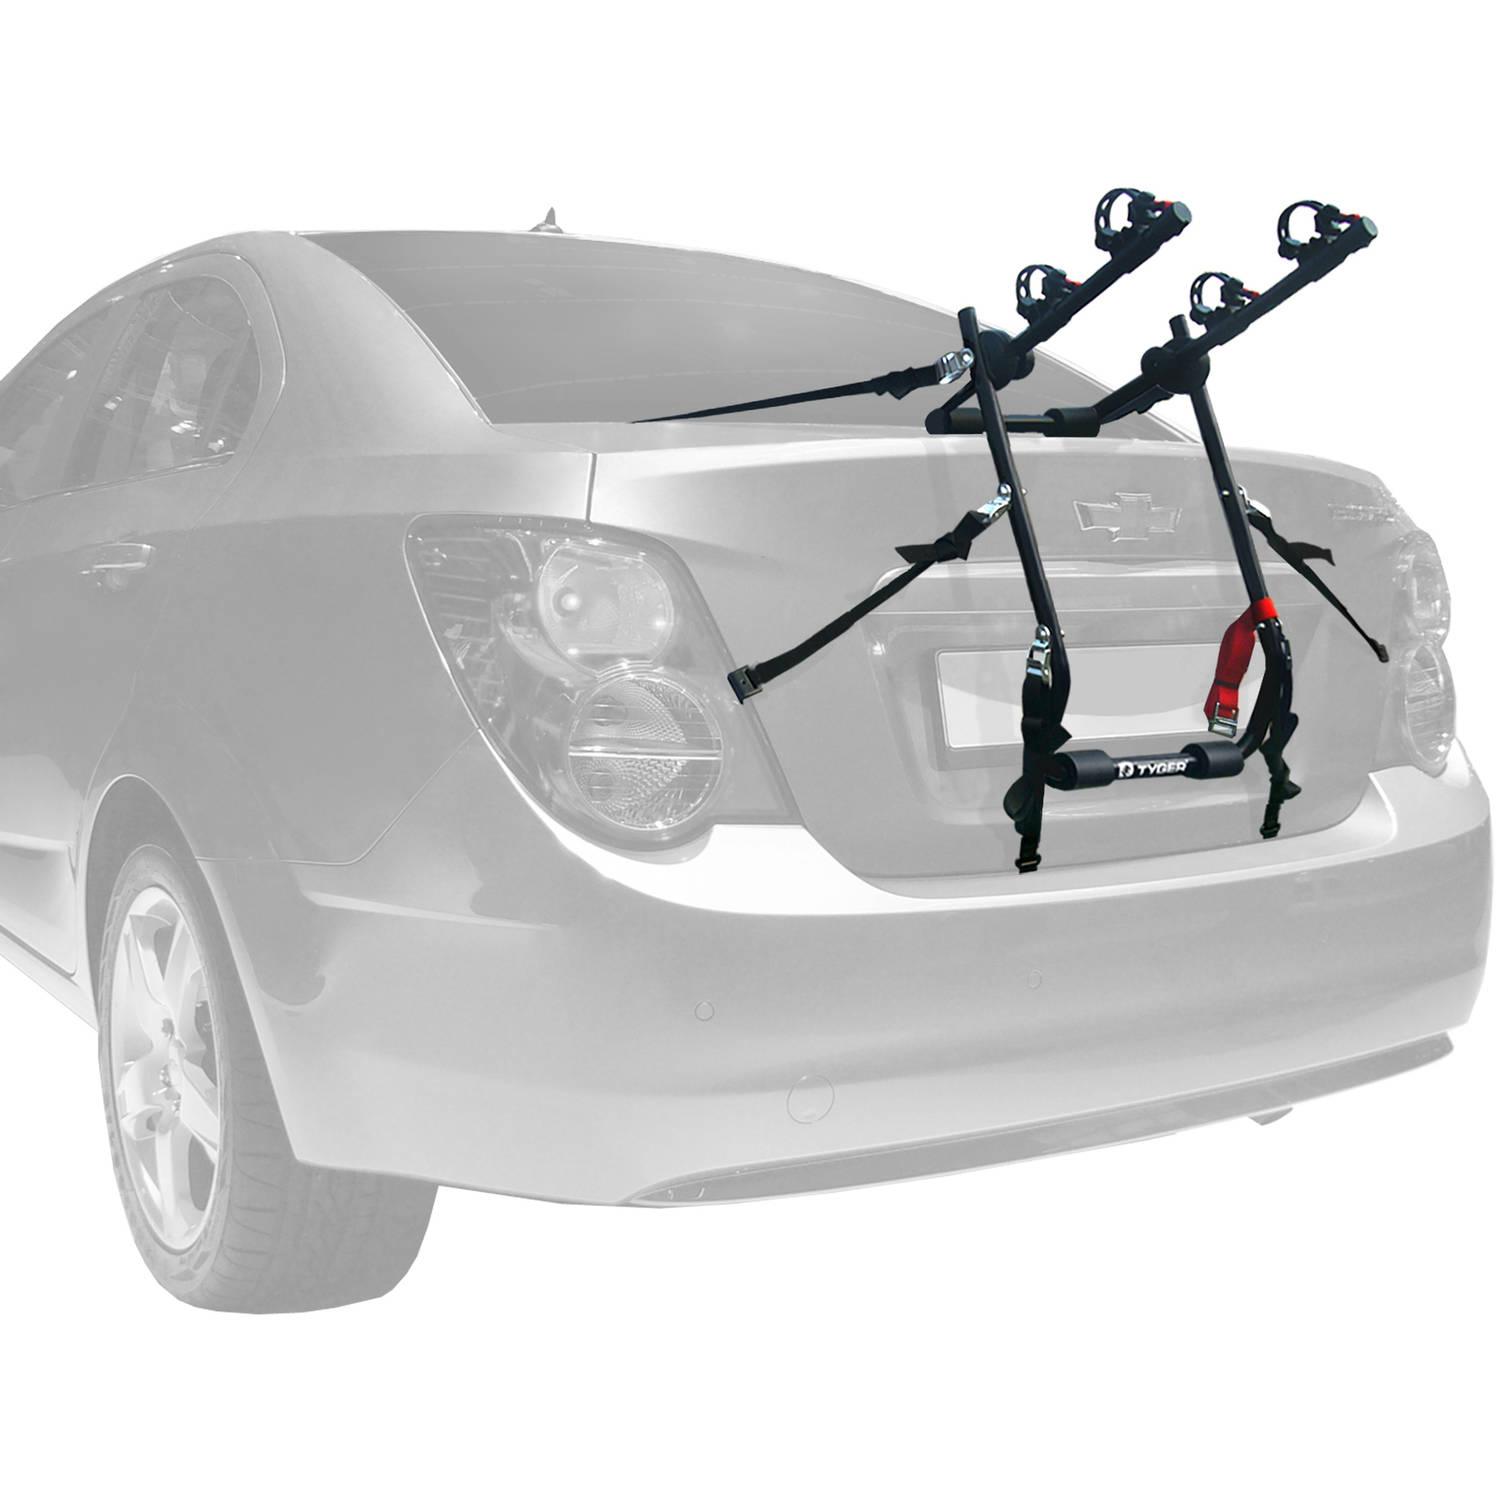 Tyger Deluxe Trunk Mount 2 Bike Carrier Rack For Sedan